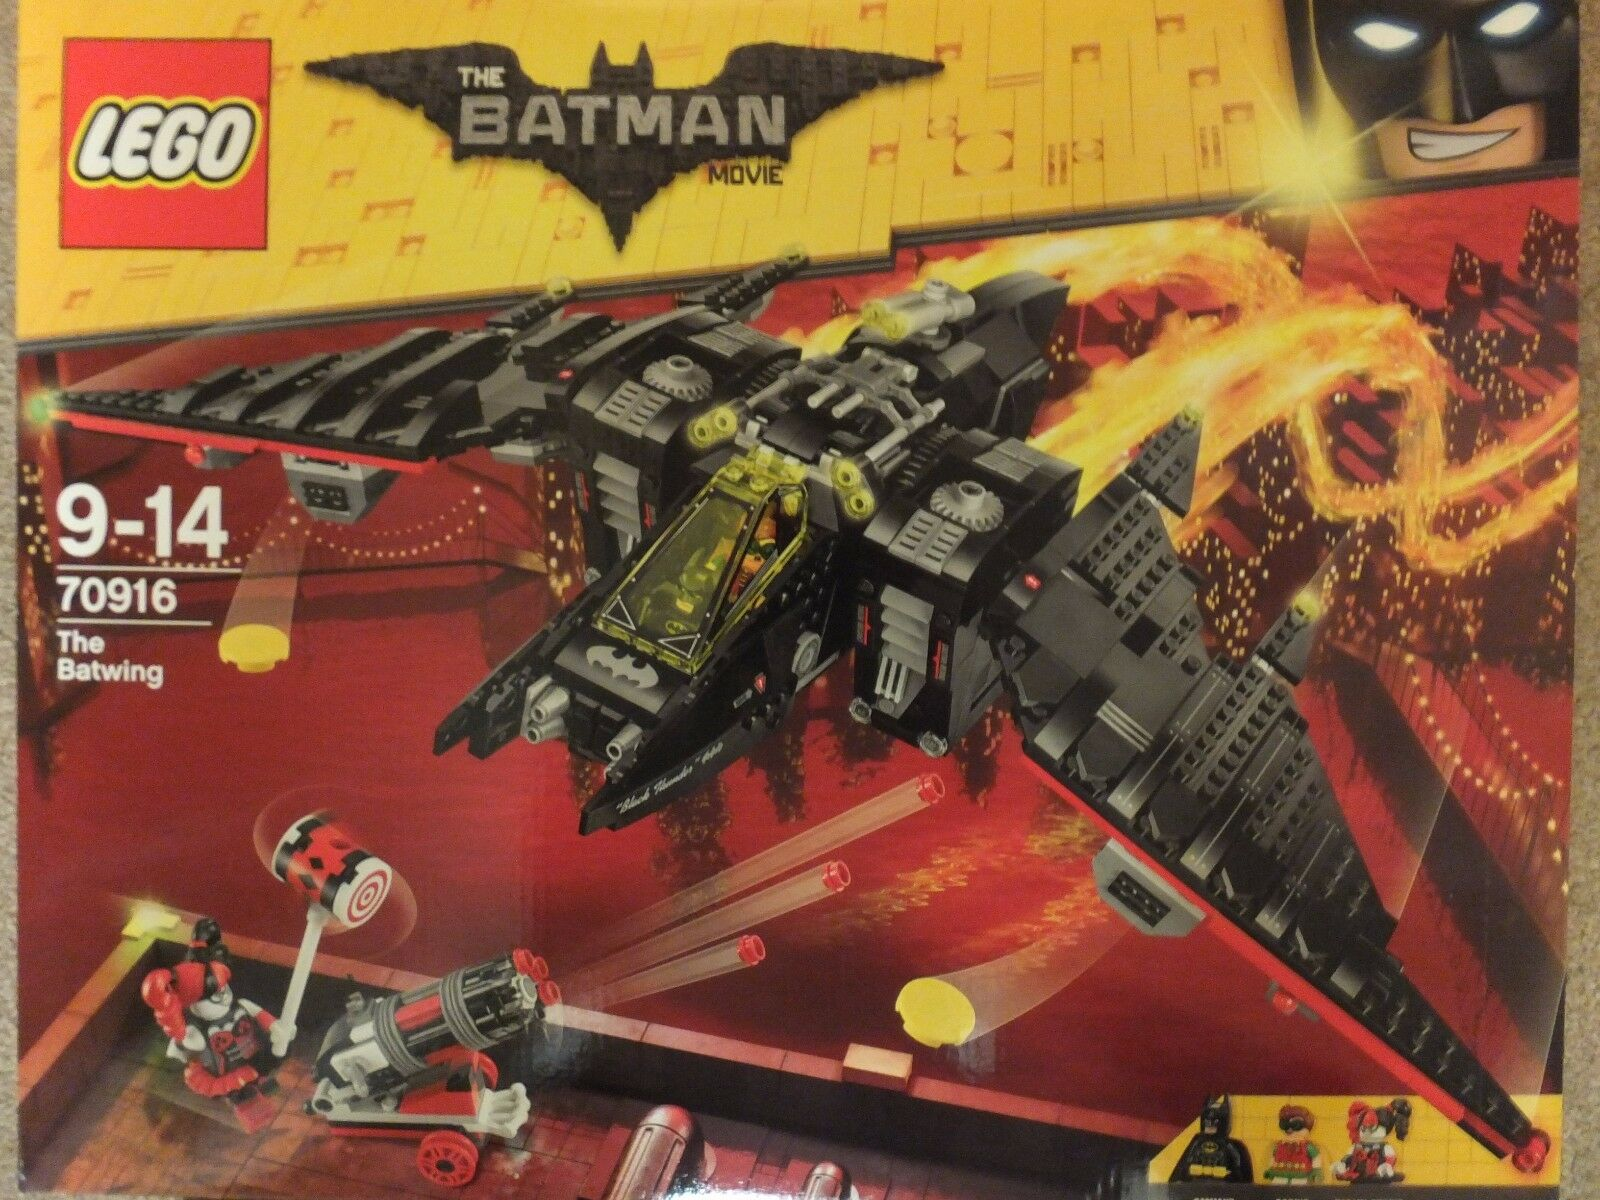 Lego 70916 Batman Movie The Batwing Set